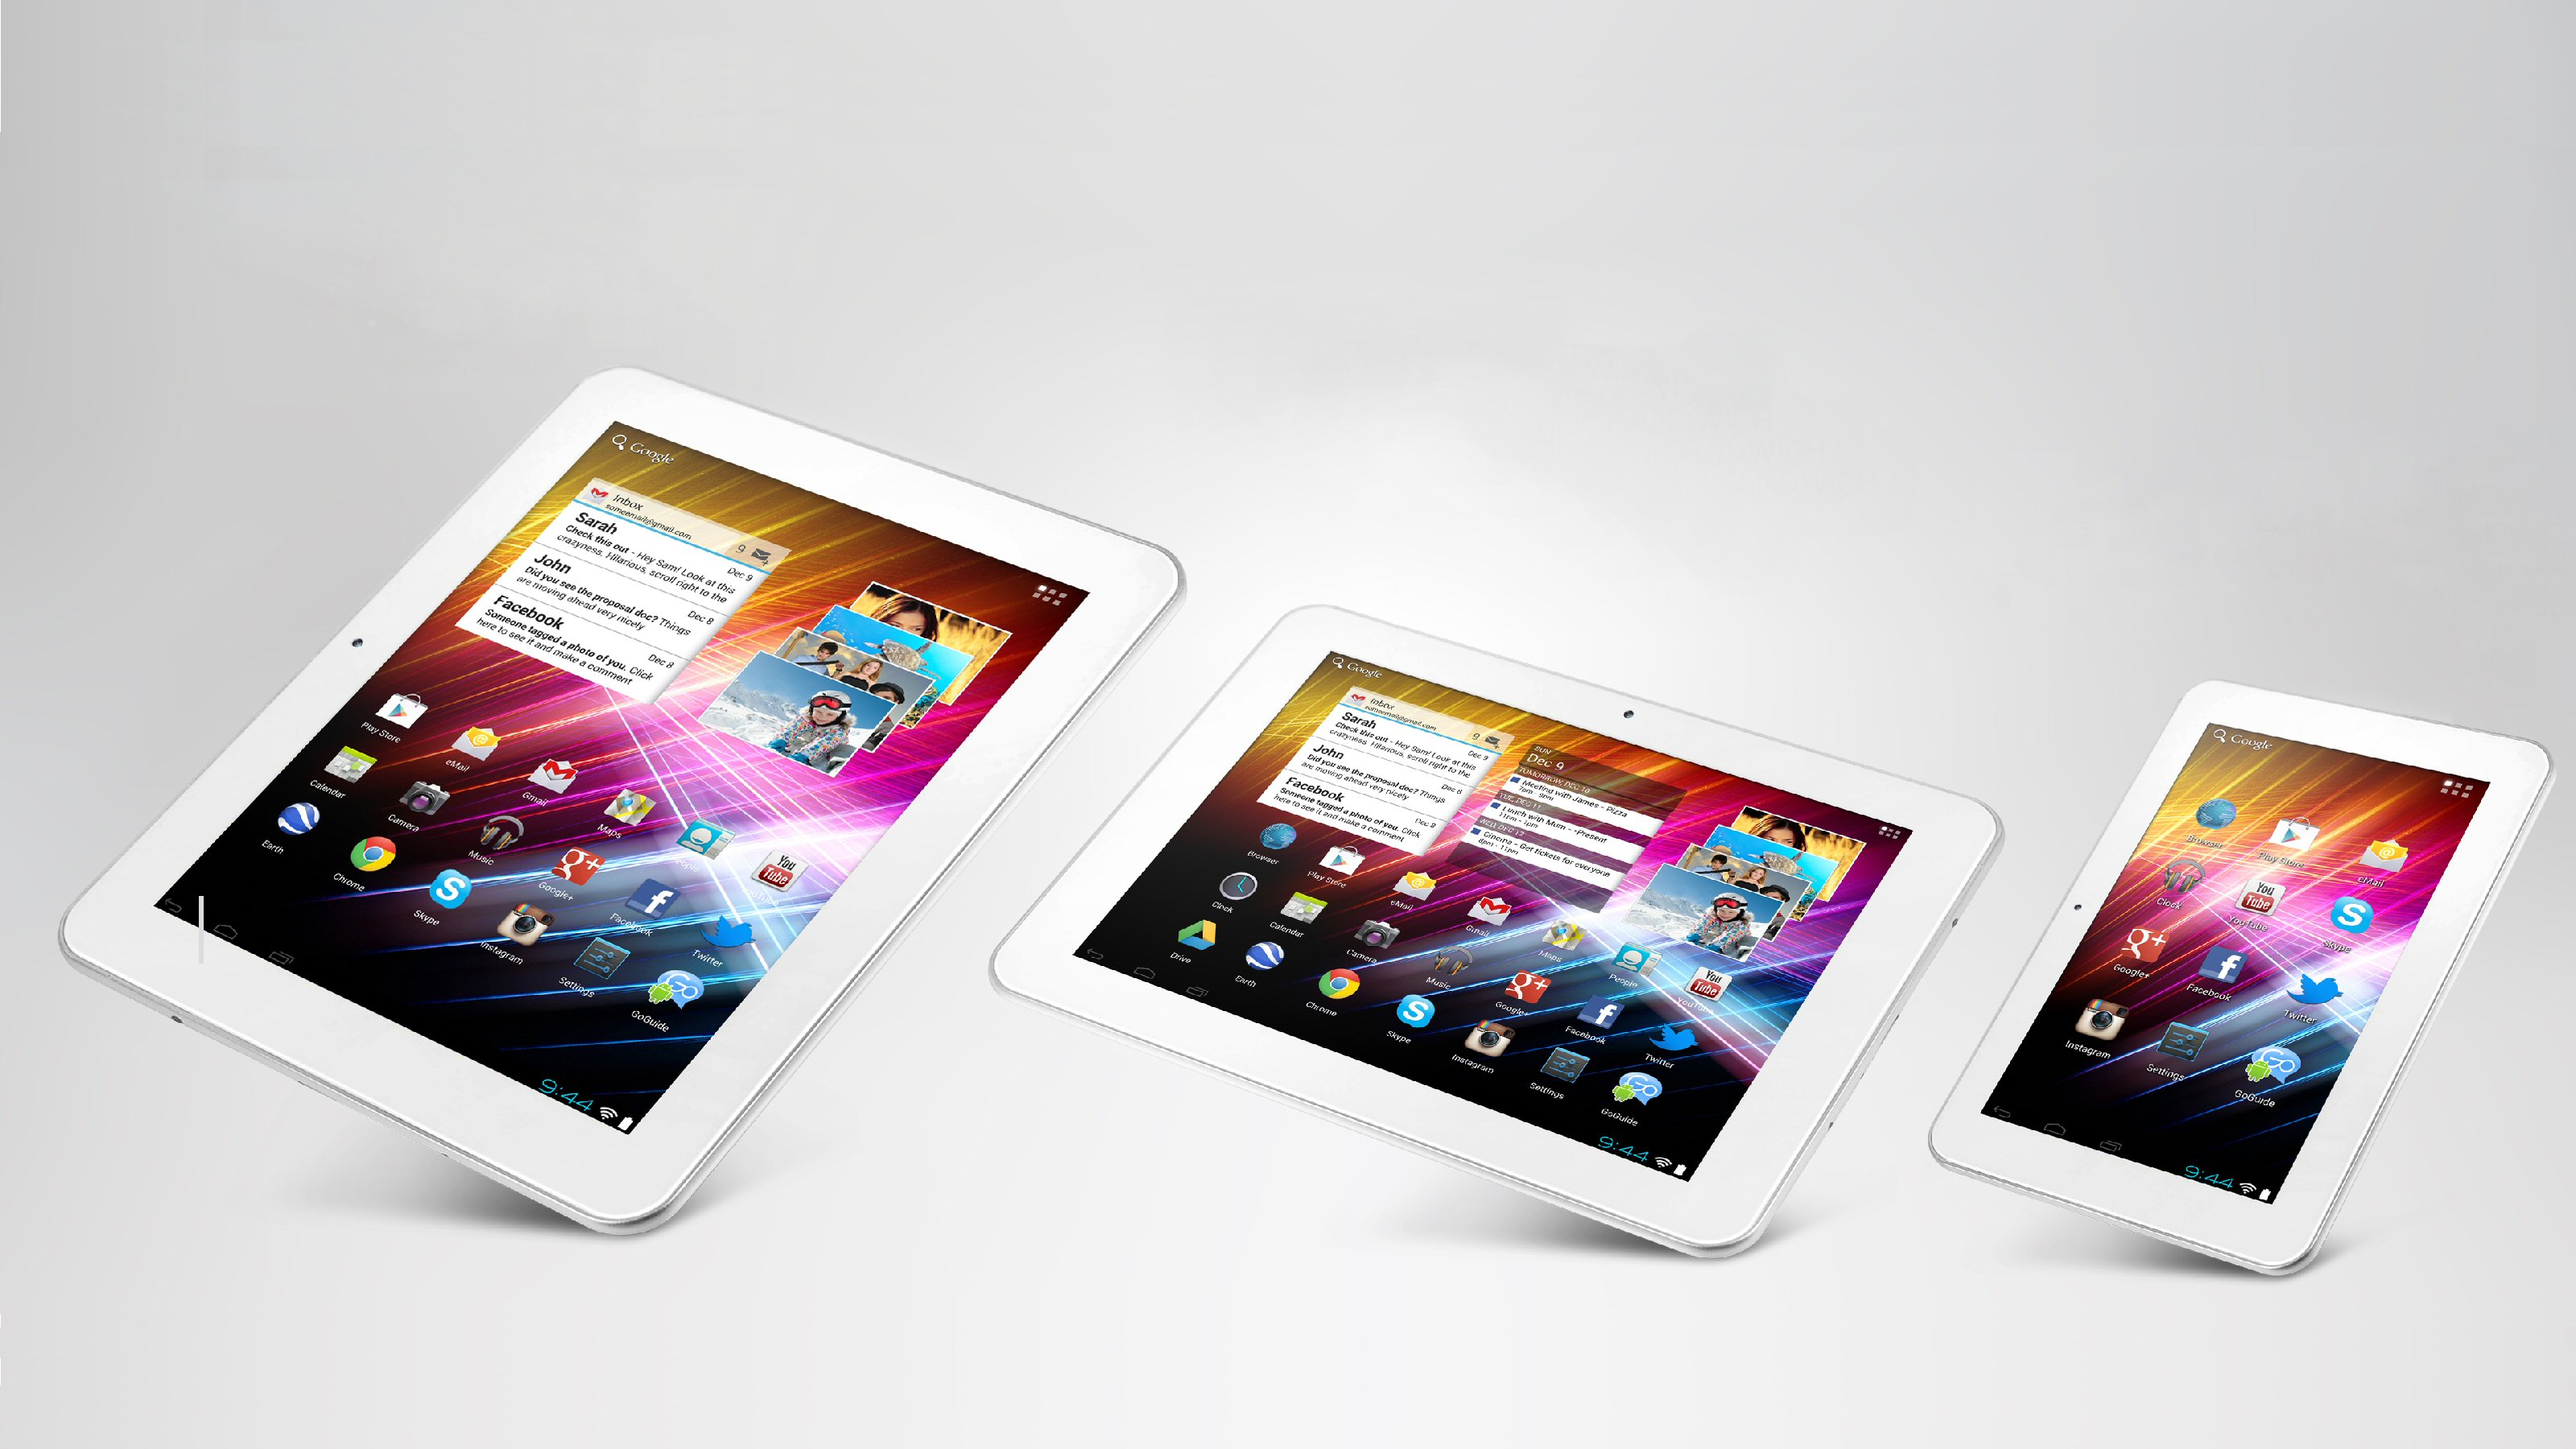 Wallet-friendly GoTab Android tablets get UK launch